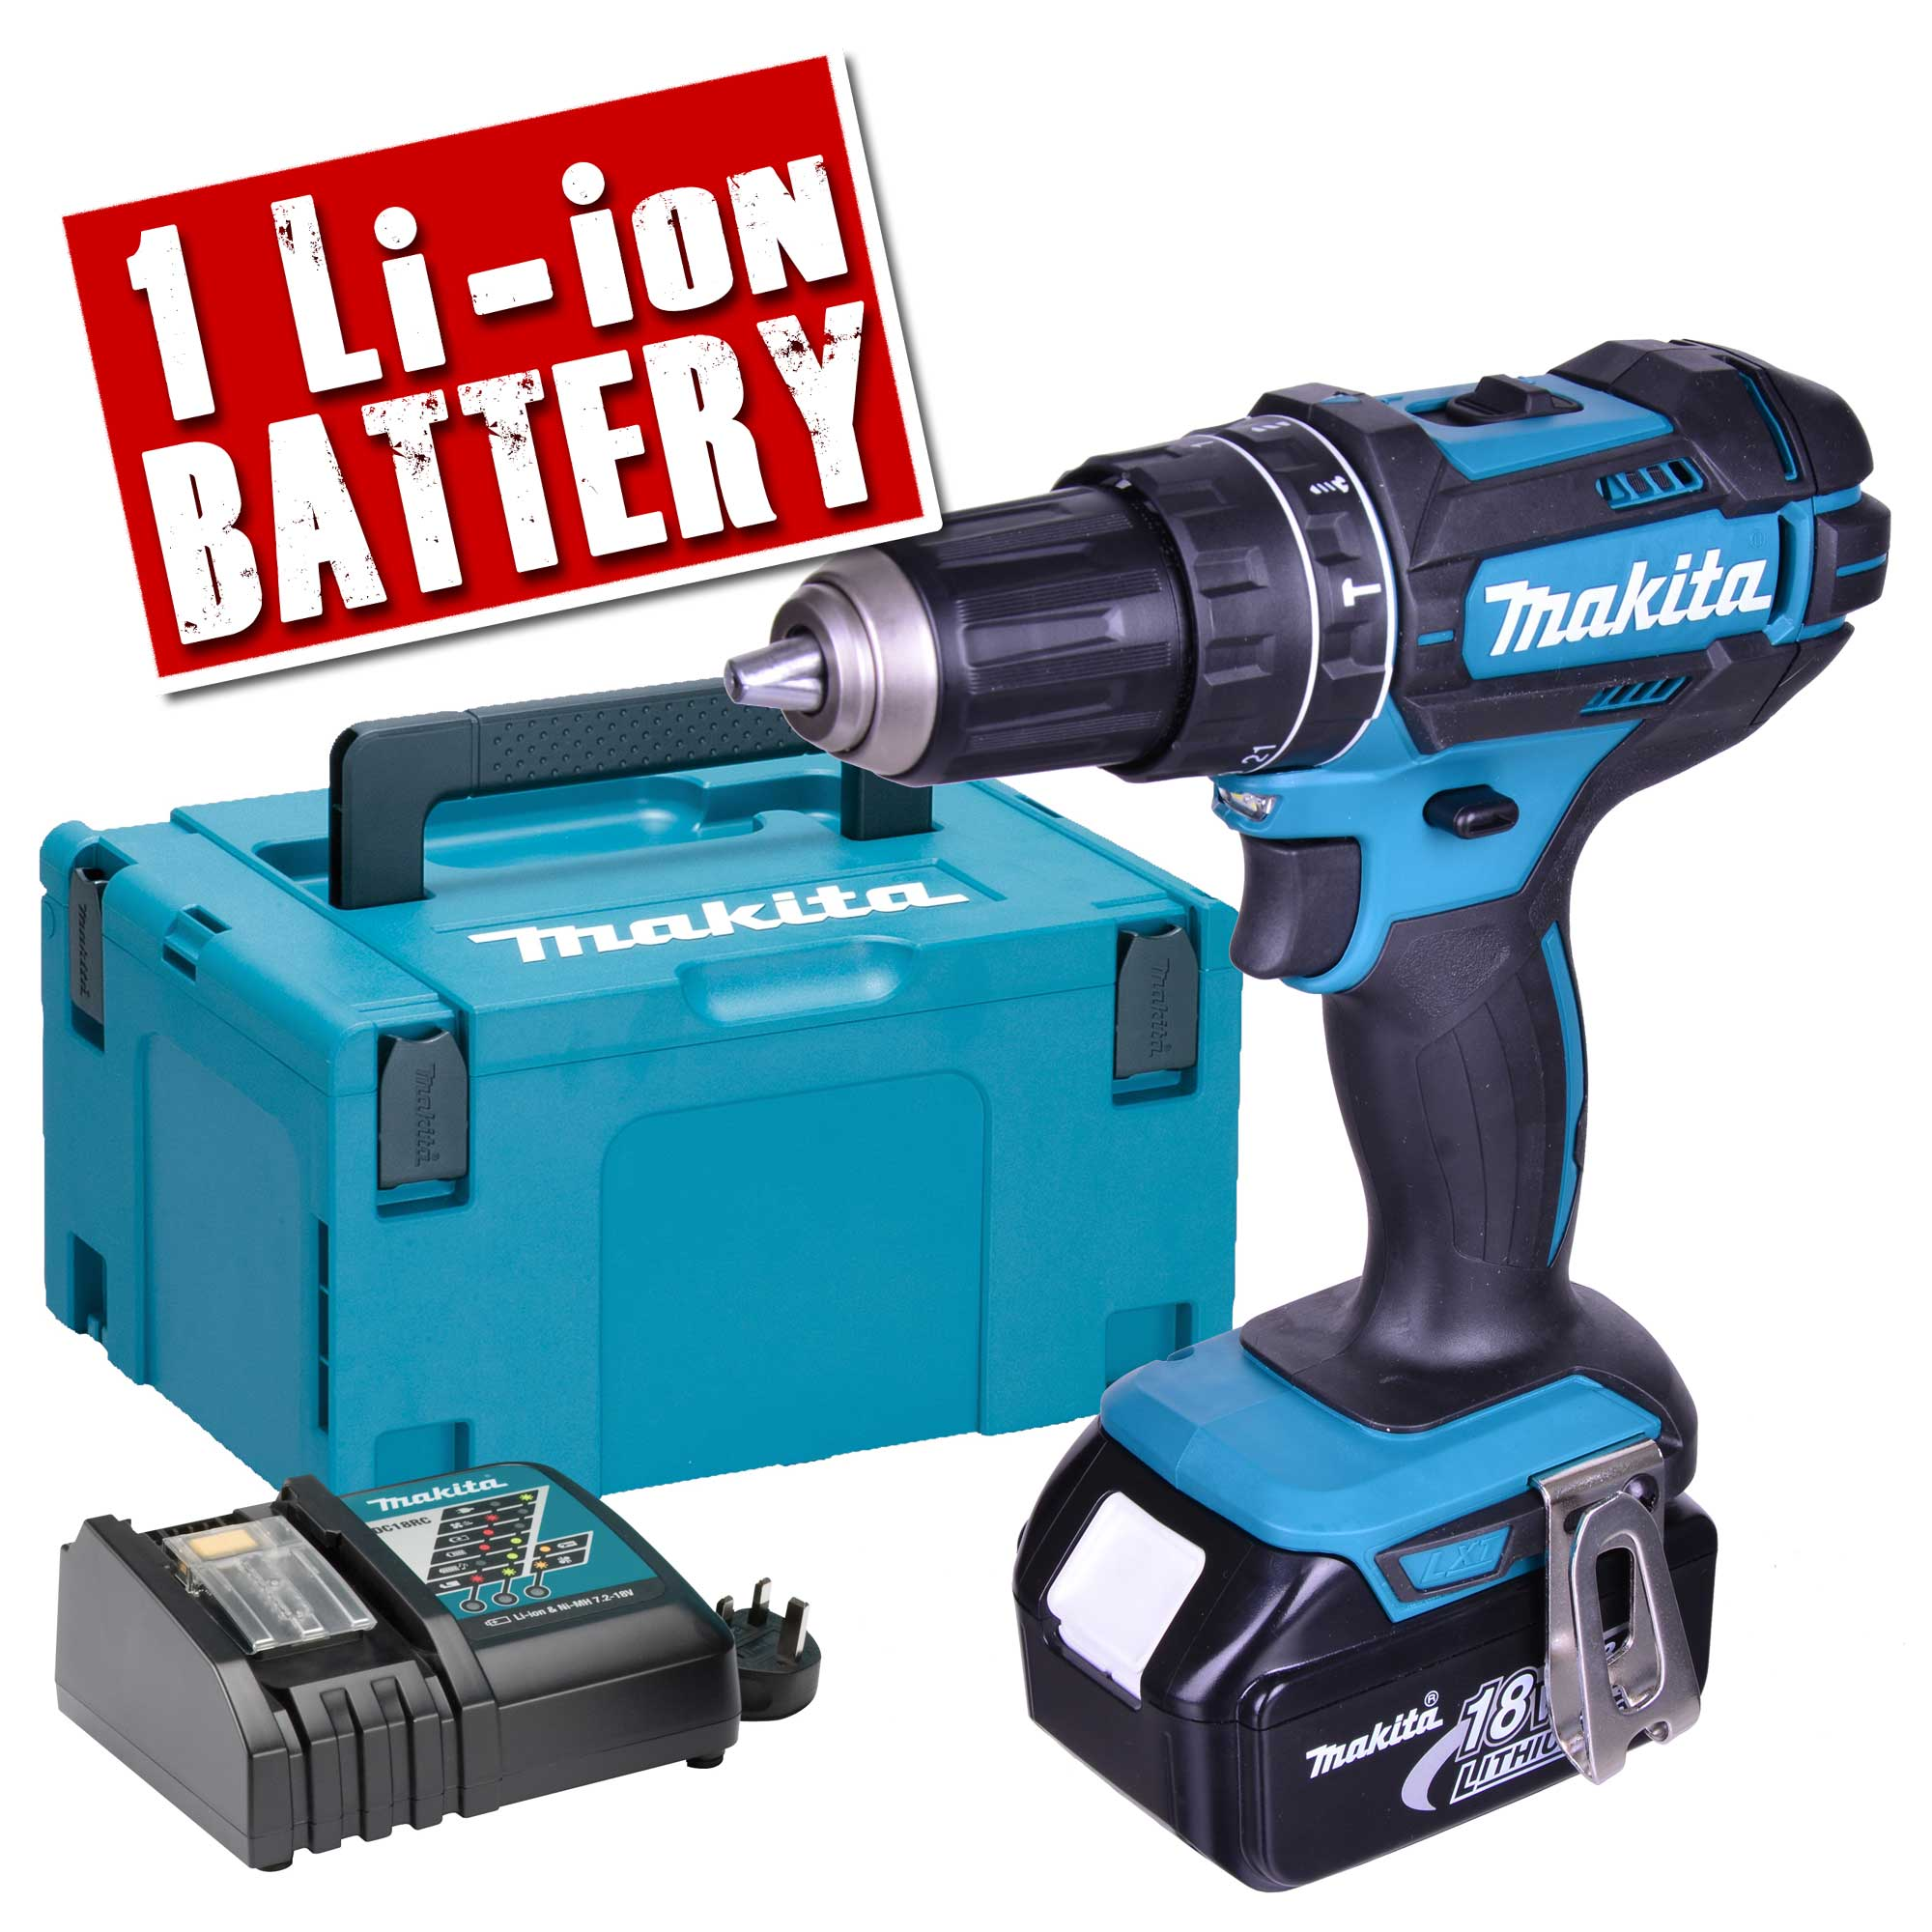 makita dhp482rtjx makita 18v li ion lxt hammer drill driver. Black Bedroom Furniture Sets. Home Design Ideas